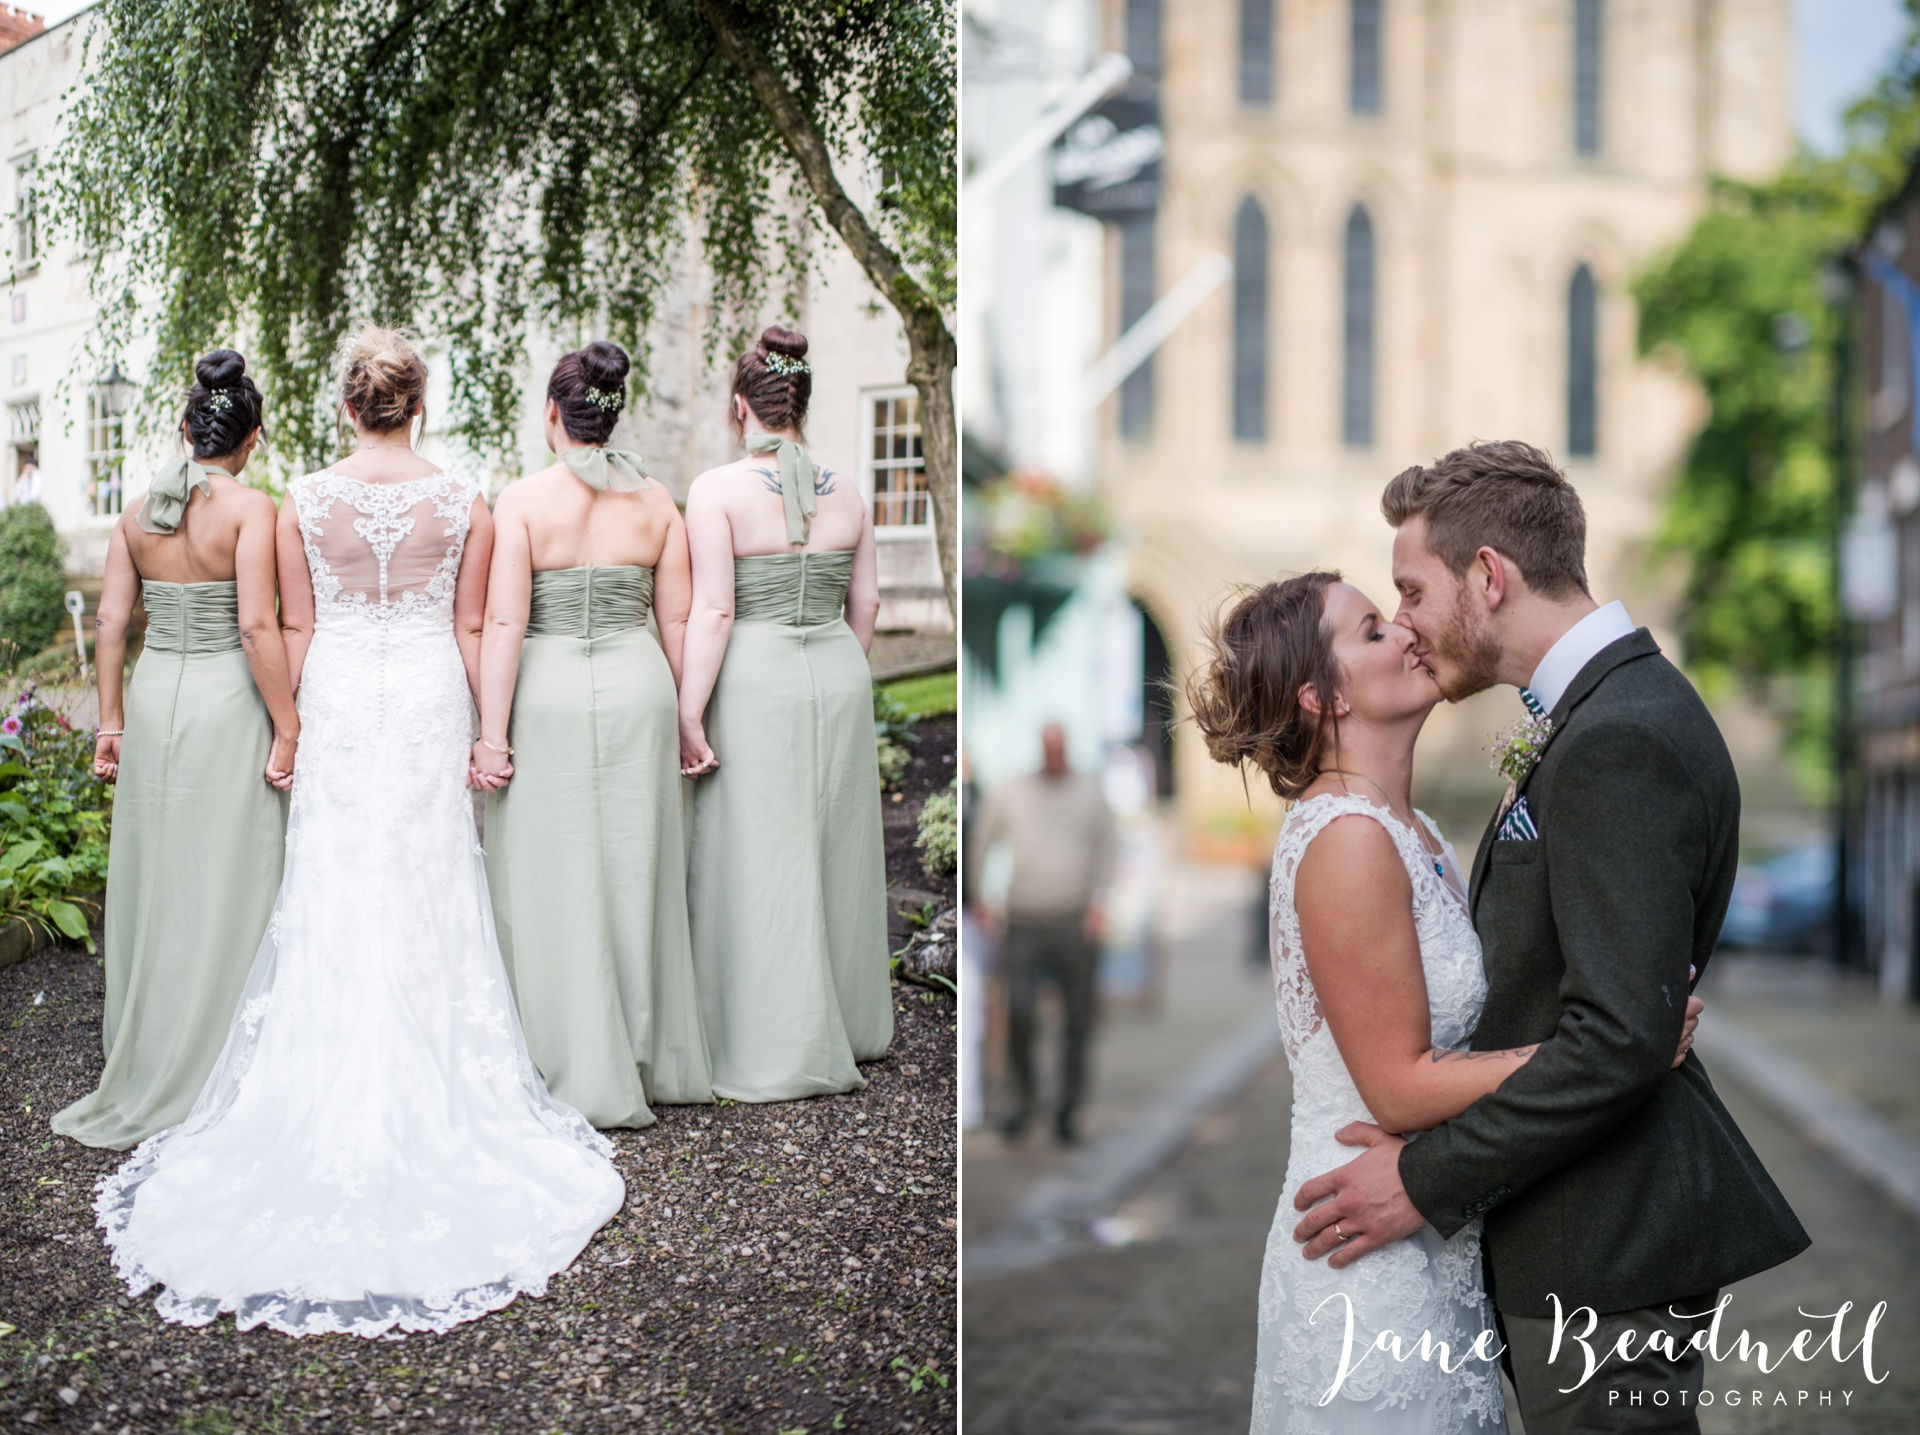 Jane Beadnell fine art wedding photographer The Old Deanery Ripon_0098